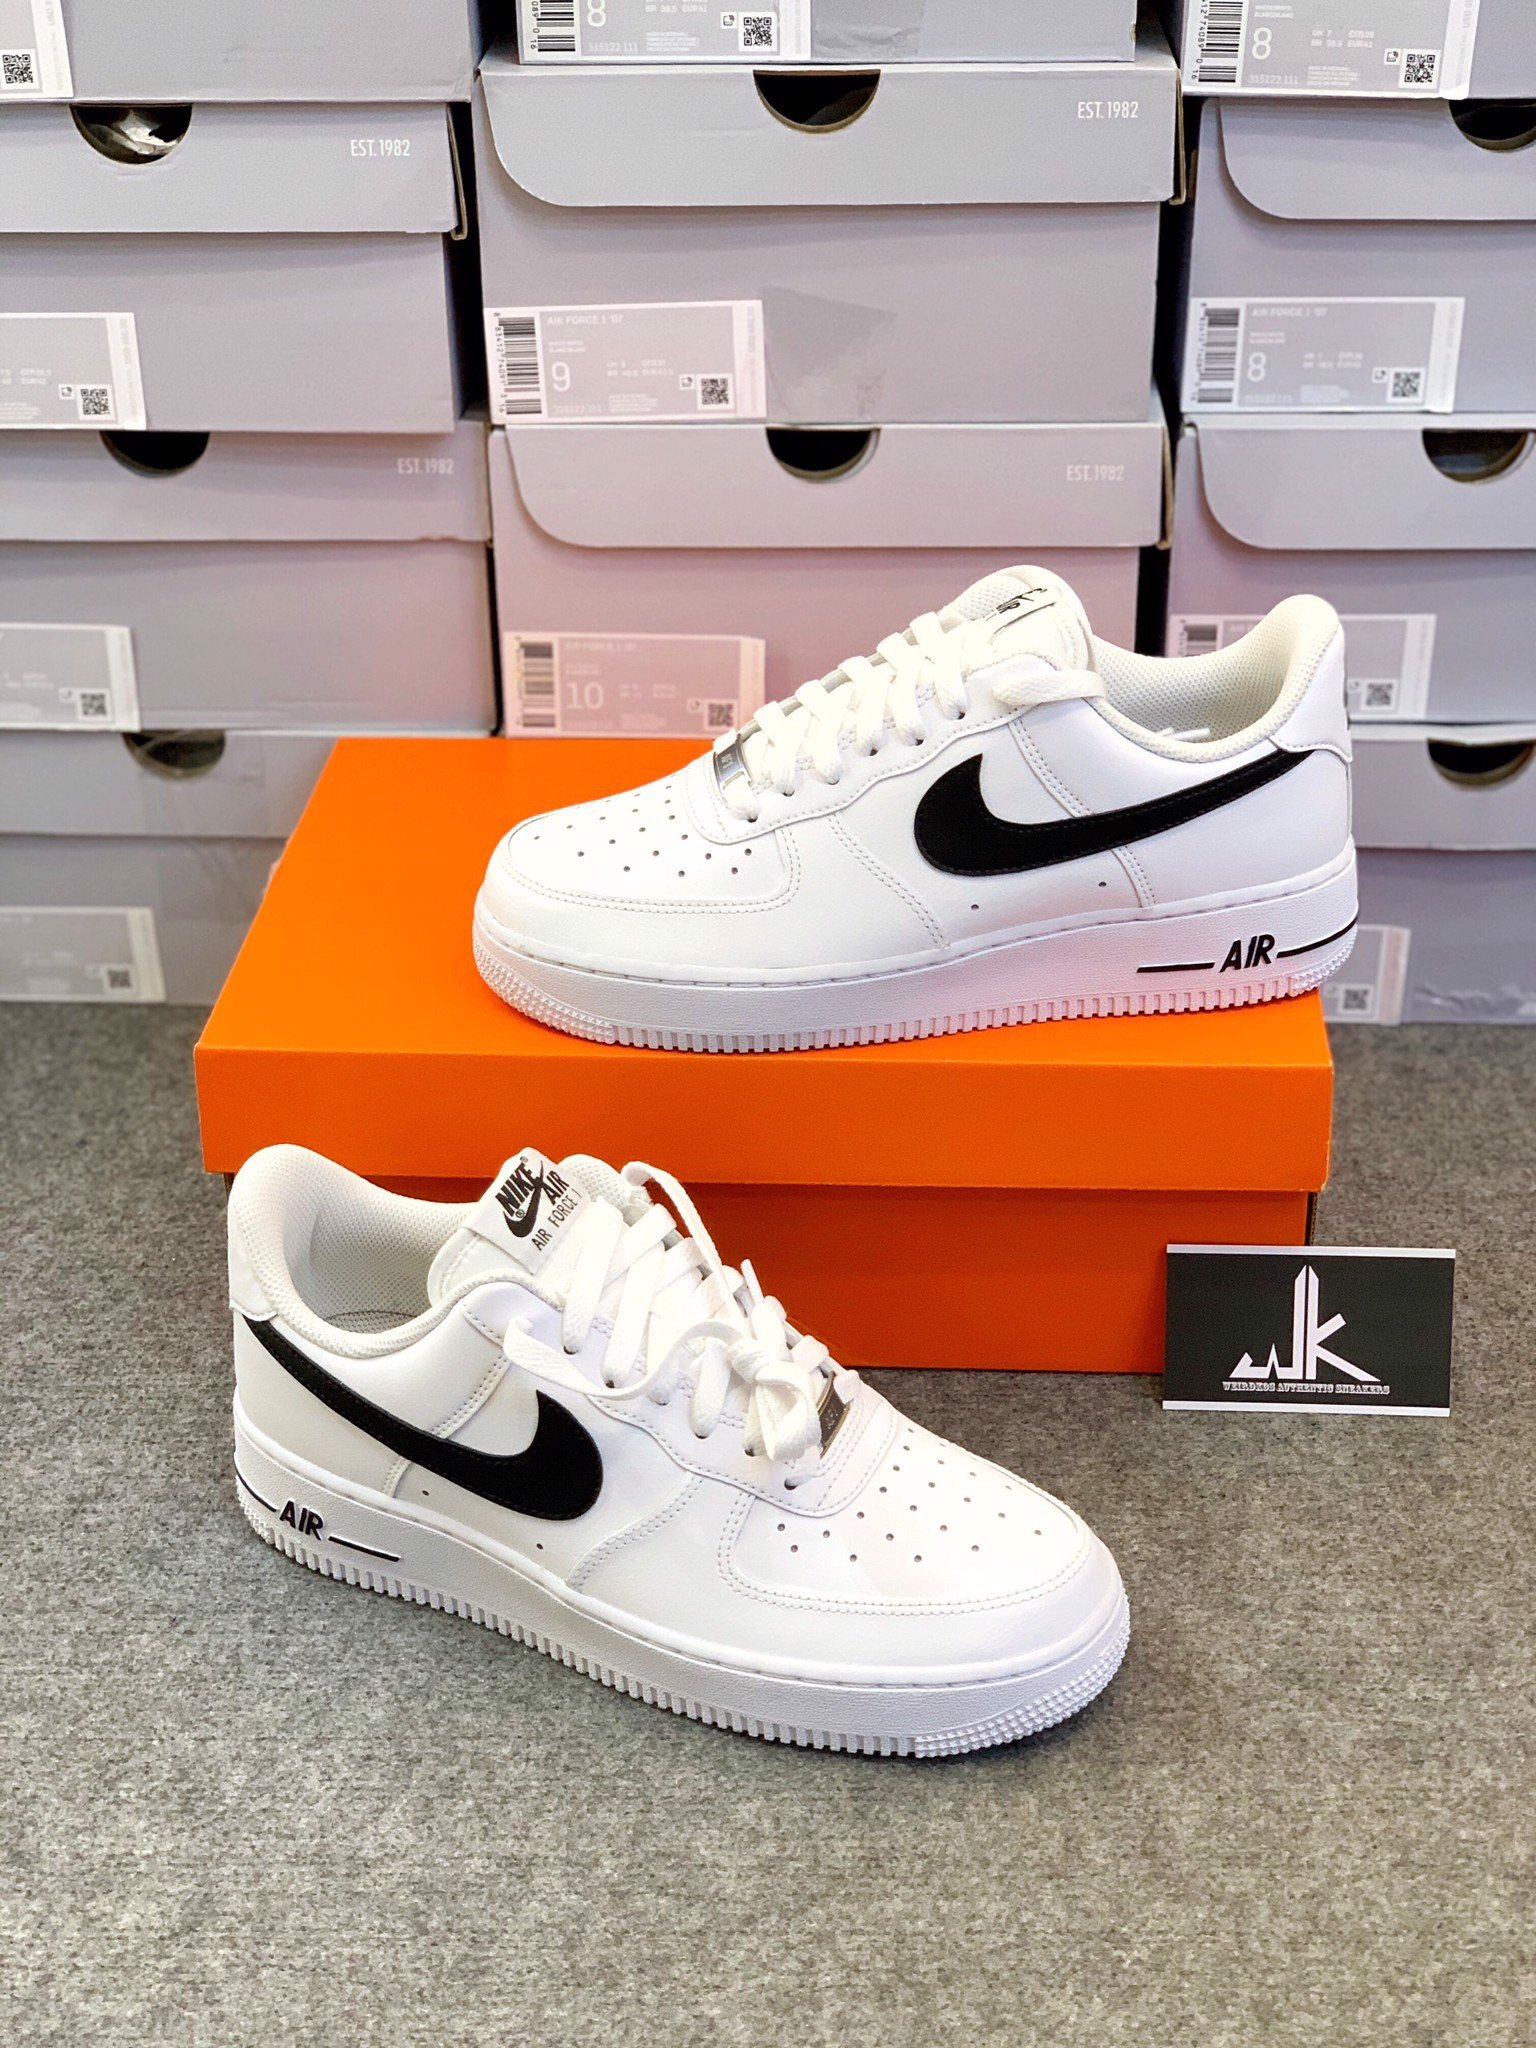 Nike Air Force 1 Low All White BLCK Swoosh